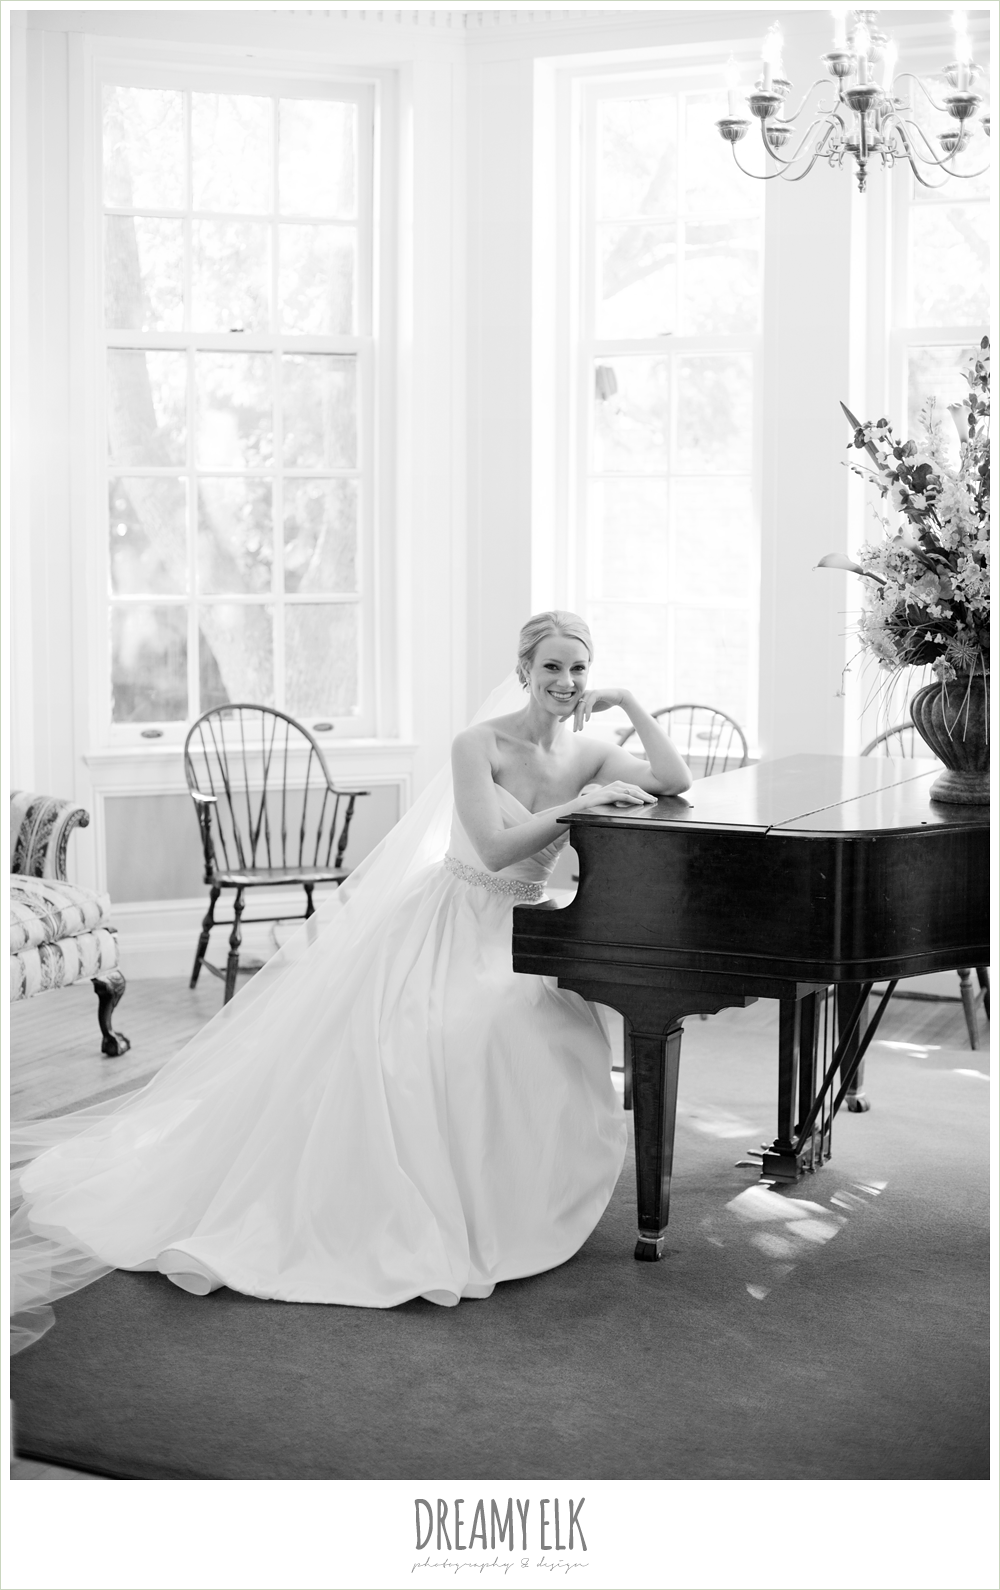 bride sitting at grand piano, indoor bridal photo, dreamy elk photography and design